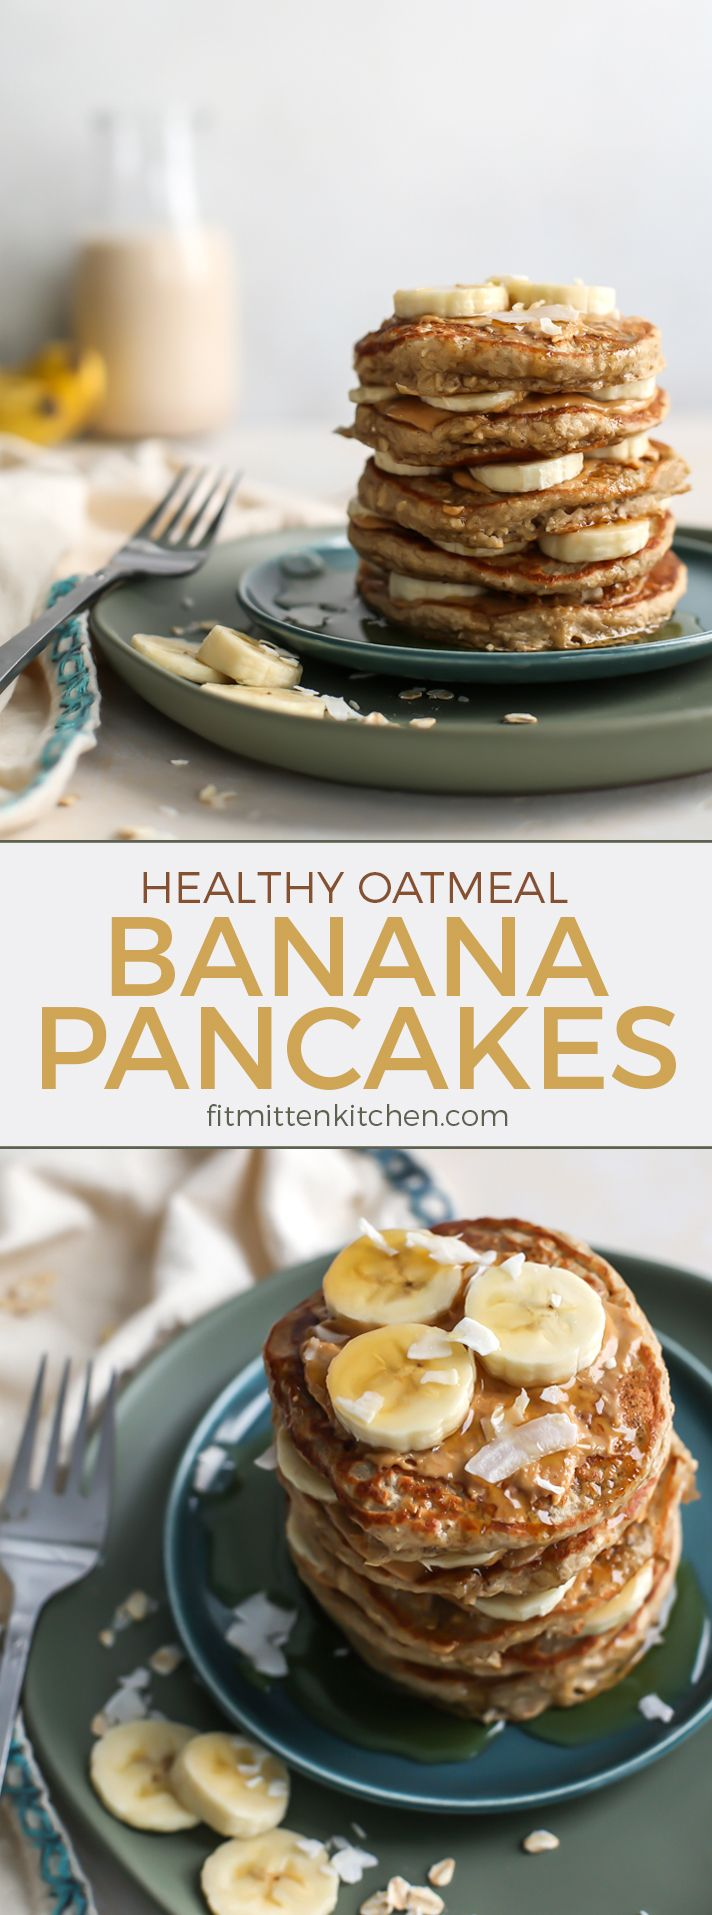 Oatmeal Banana Pancakes made healthy with oats, bananas, unsweetened non-dairy milk and no added sugar. Gluten-free friendly and you can even sub flaxseed meal in place of the egg for vegan friends. Perfect for slow weekend mornings but freezer-friendly for weekdays too! | fitmittenkitchen.com #pancakerecipes #healthypancakes #bananapancakes #glutenfreefrecipes